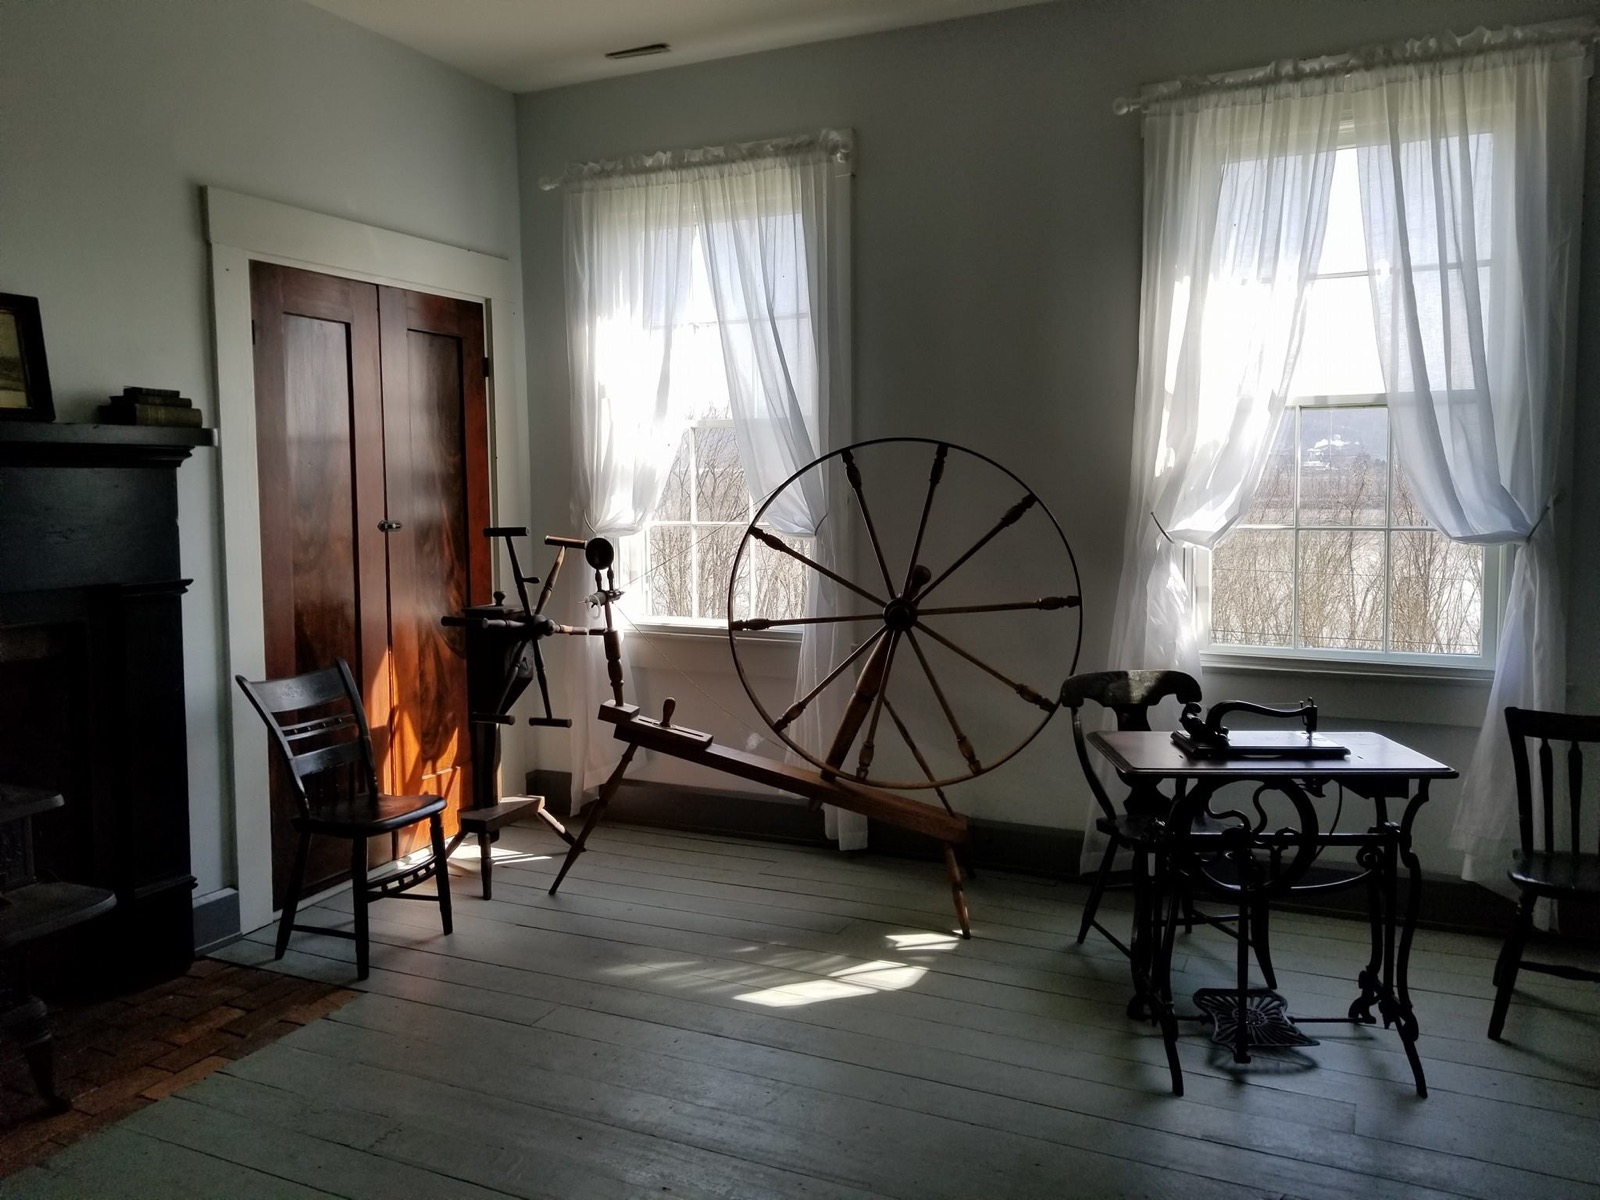 At the Thiebaud Farmstead, a group of historical period actors will show you the ins and outs of life in 1843, including quilting, spinning, sewing, and how to press 300 pounds of hay. You'll even see how folks back then did laundry, which is sure to give you a new appreciation for your washing machine. / Image courtesy of Switzerland County Historical Society // Published: 4.1.18